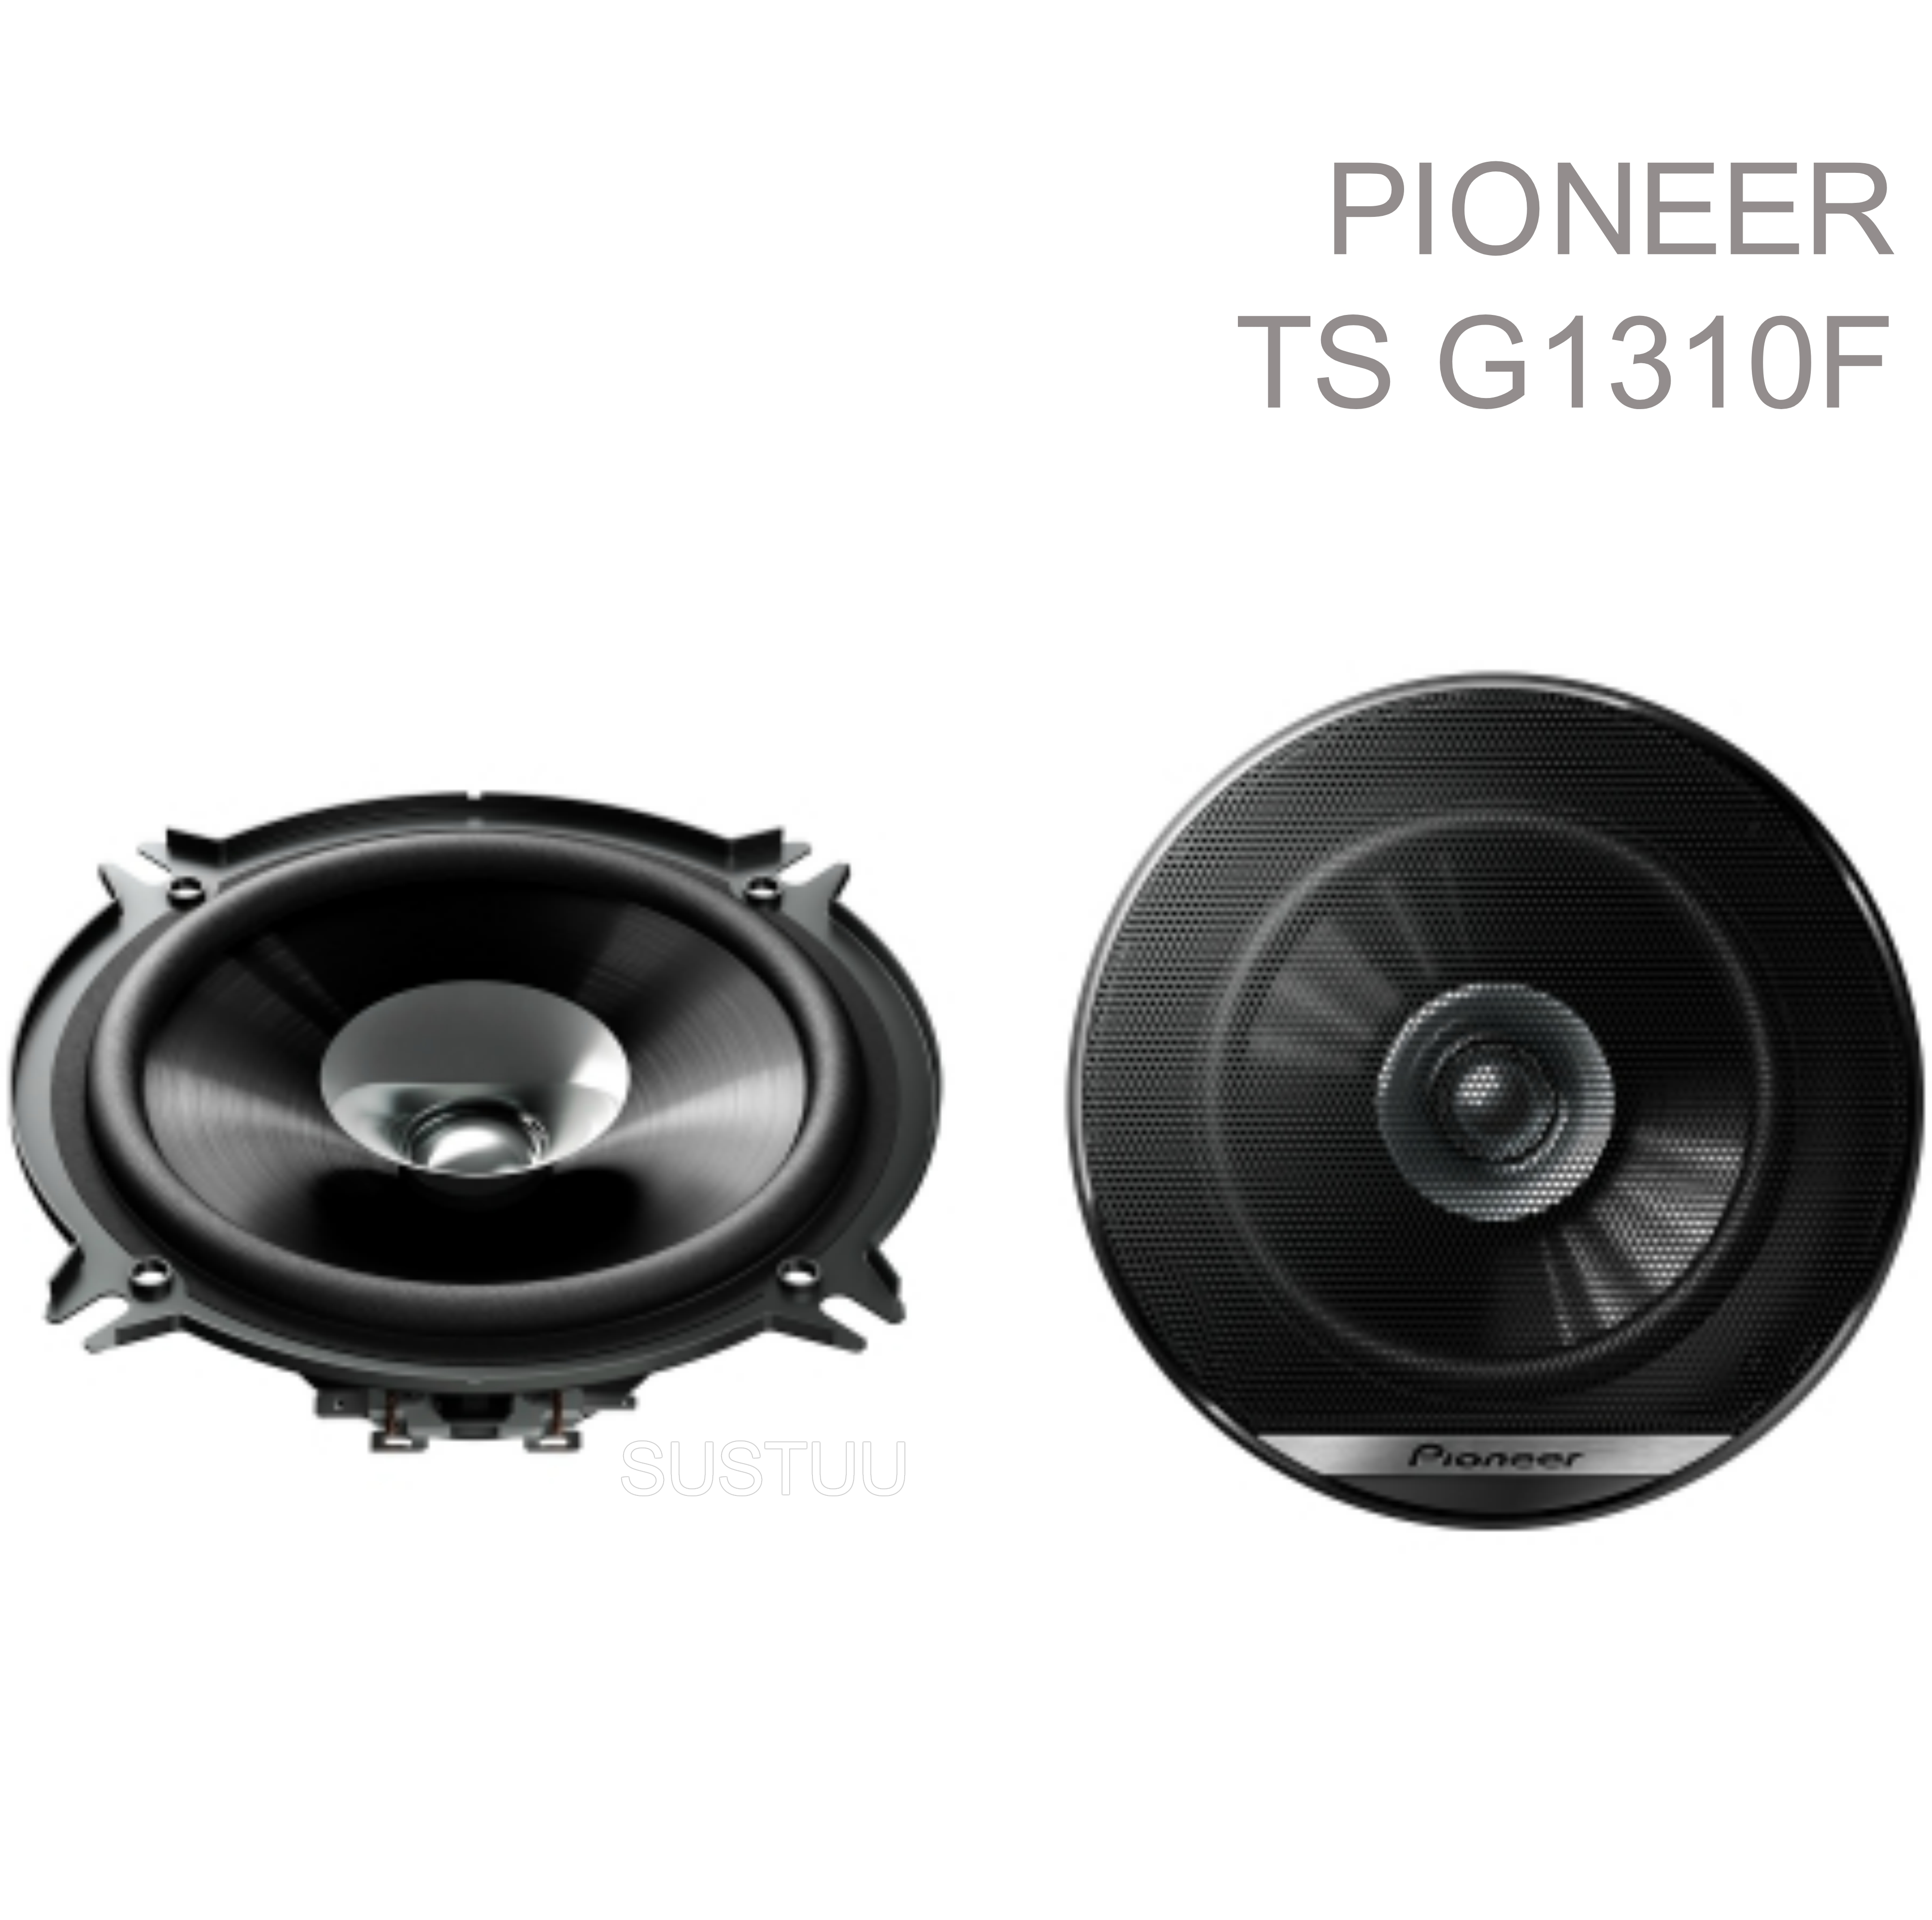 "Genuine Pioneer TS G1310F 5.25"" 230W 13Cm Dual Cone Coaxial Car Door Speakers"